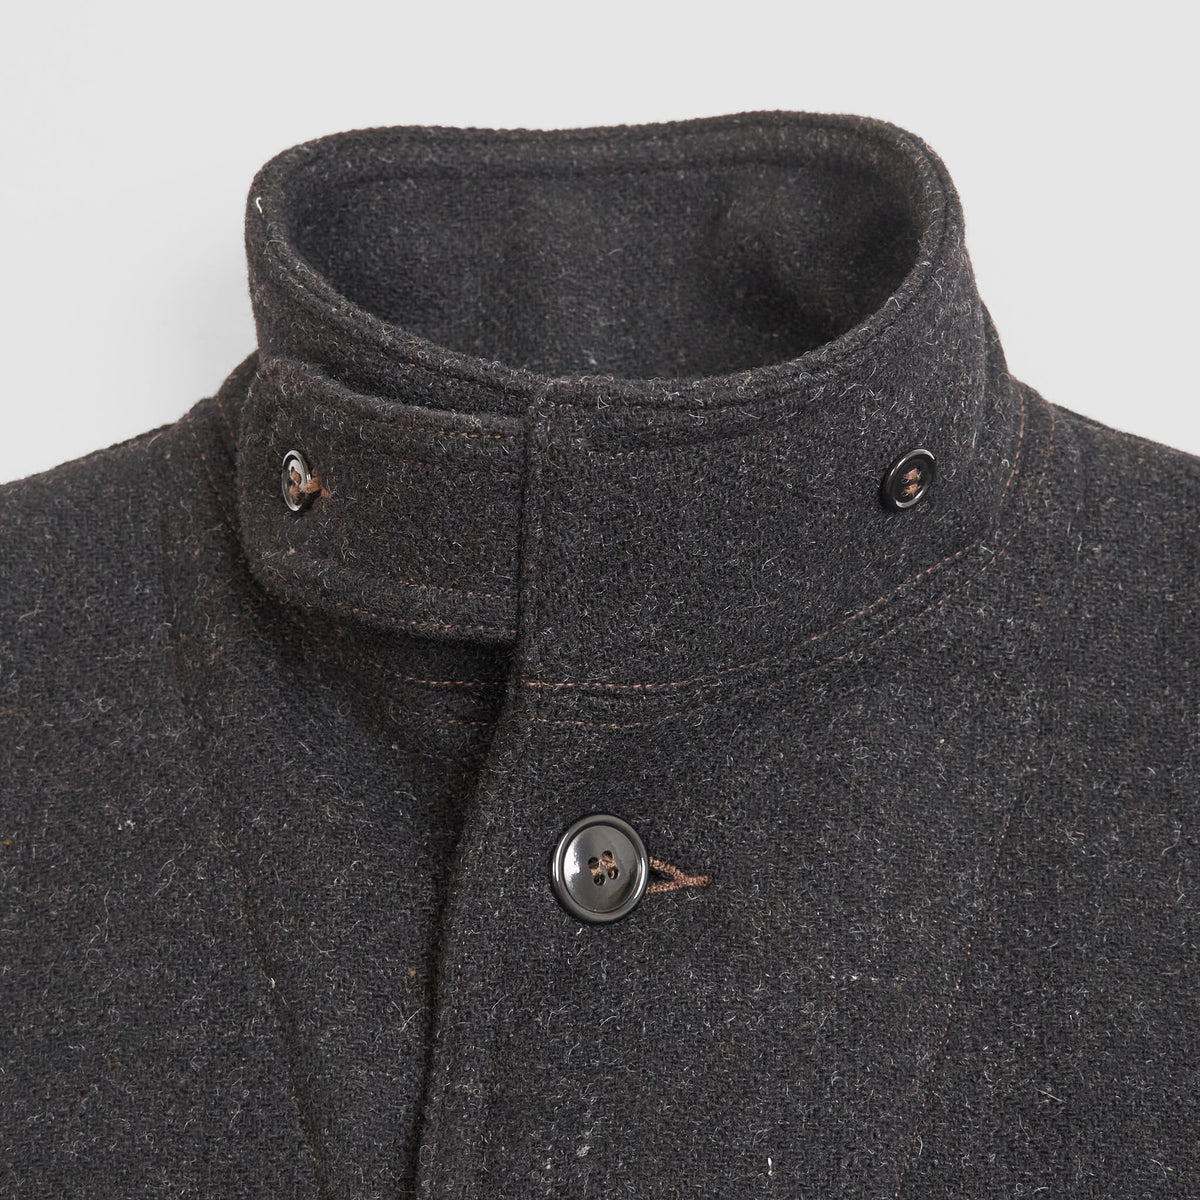 Buzz Rickson's U.S. Navy Winter Wool Jacket